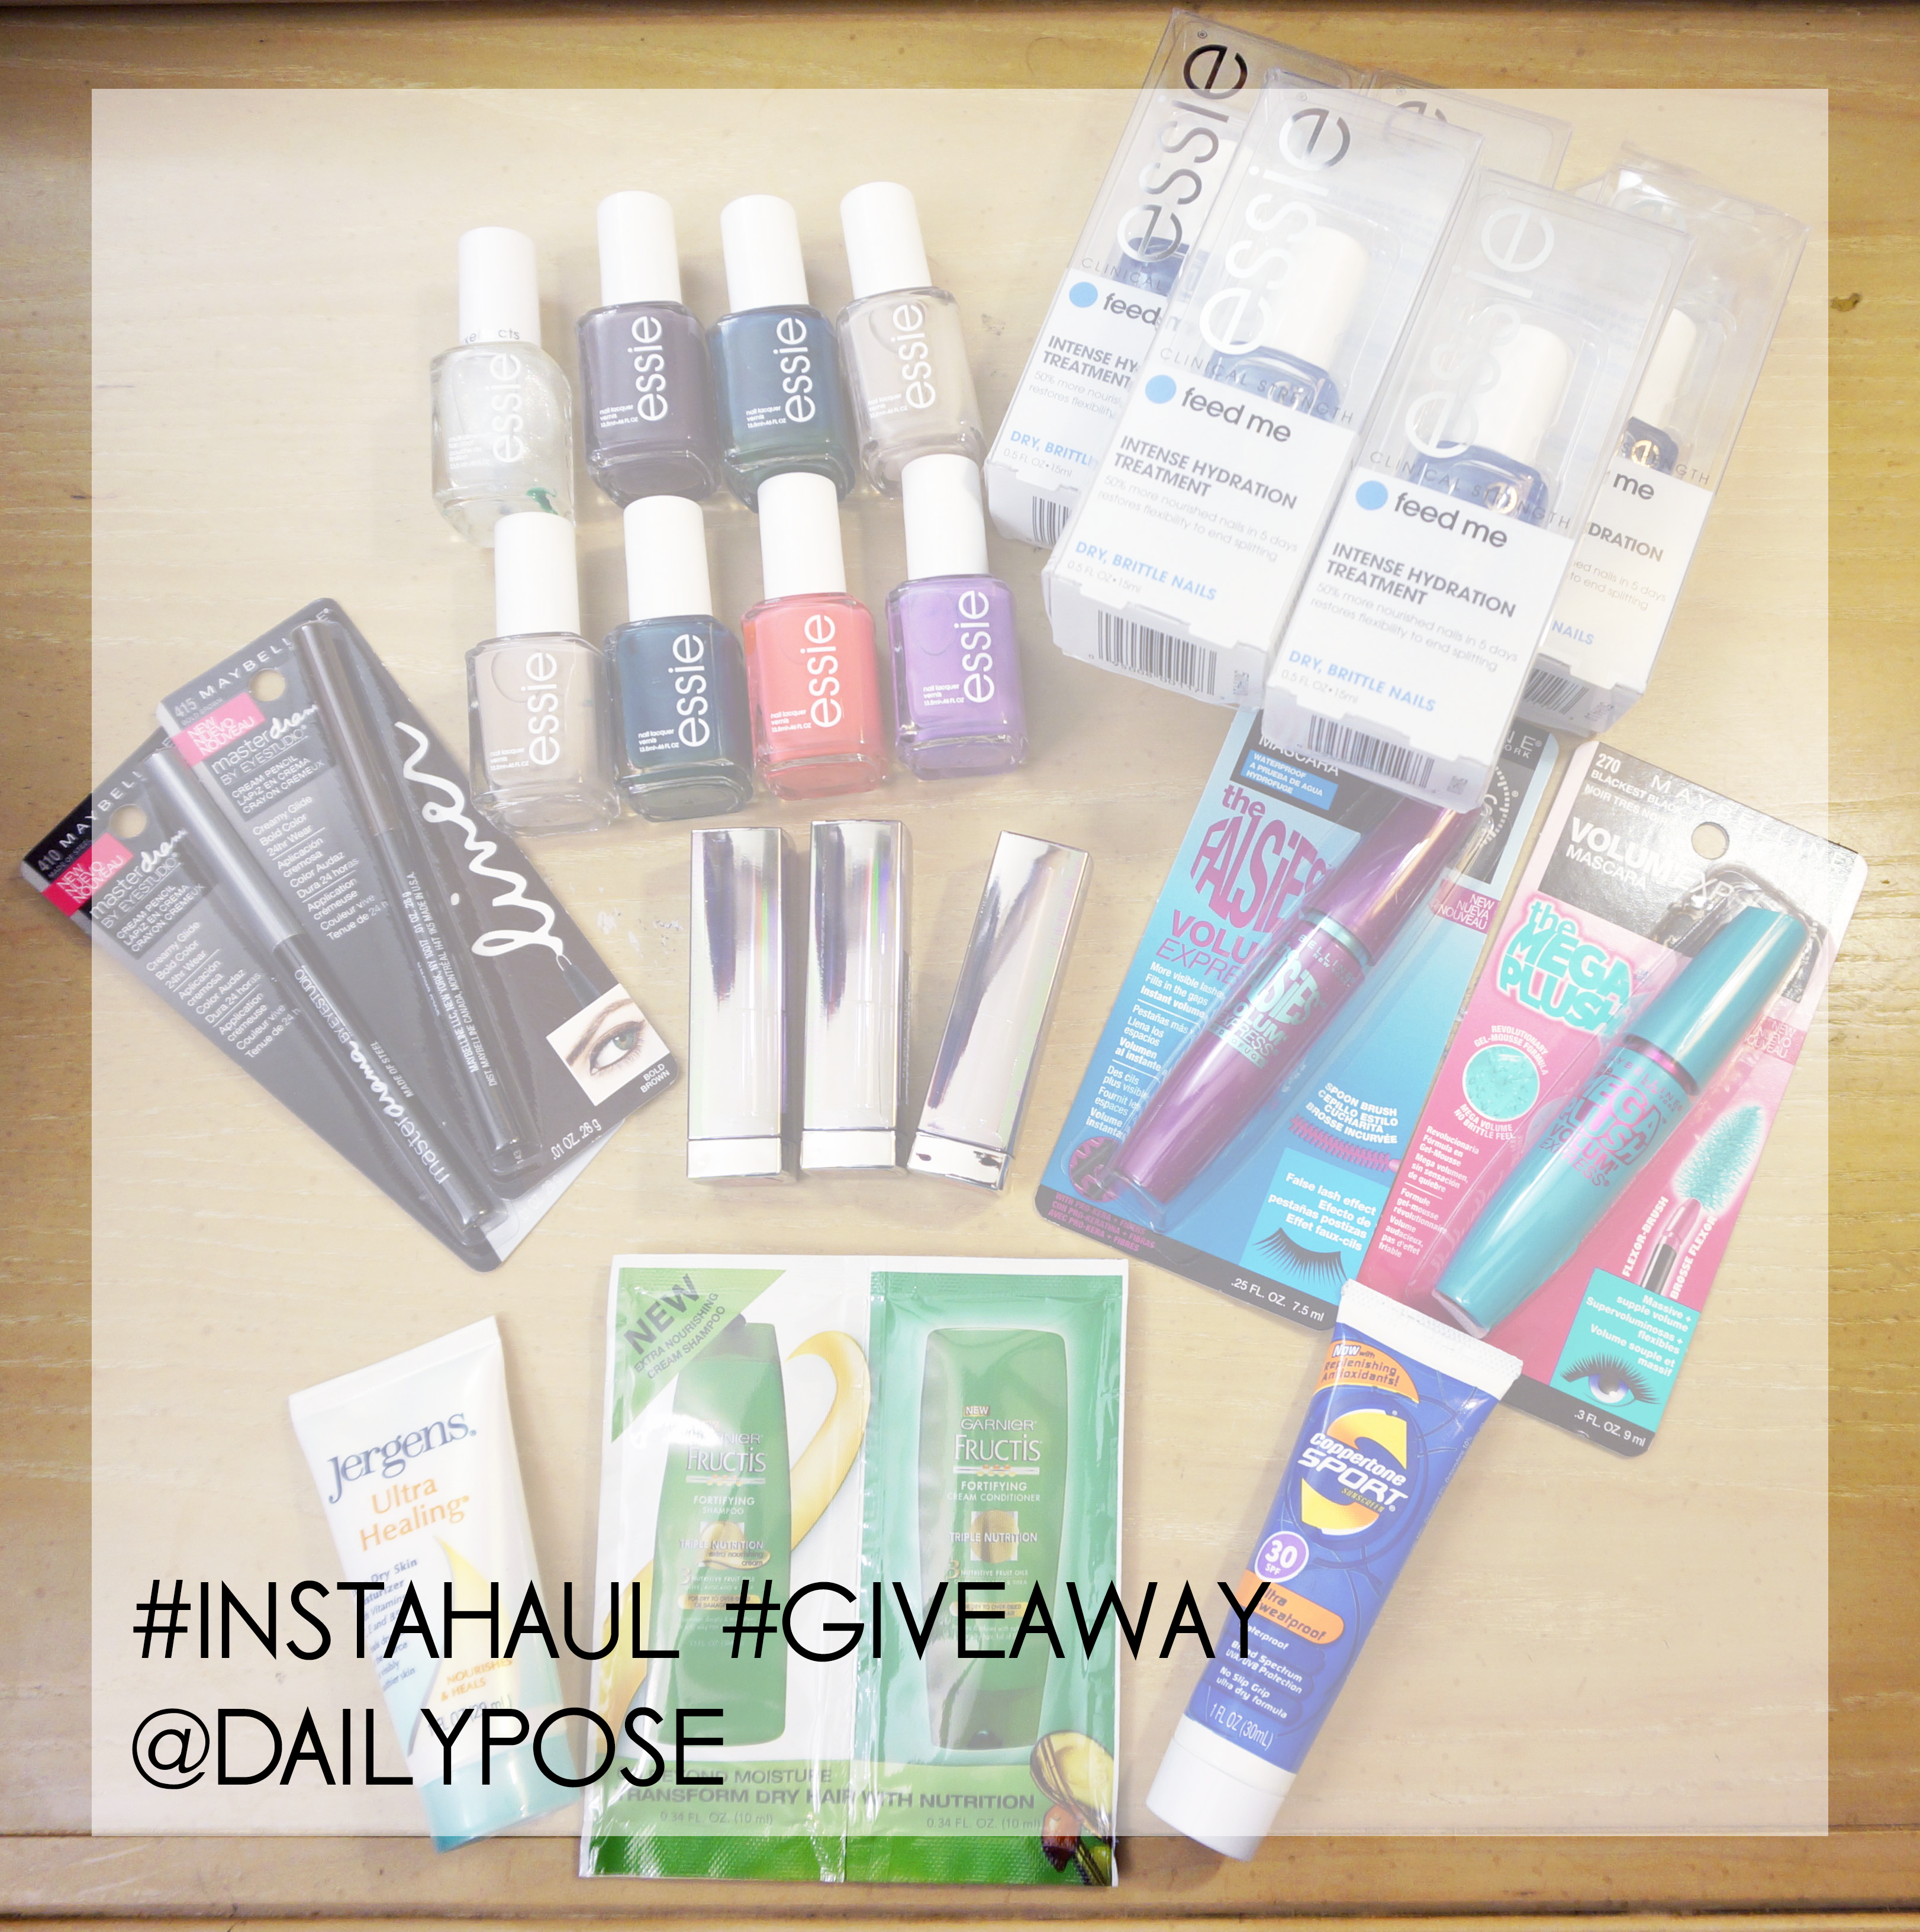 Follow @dailypose to win giveaways weekly